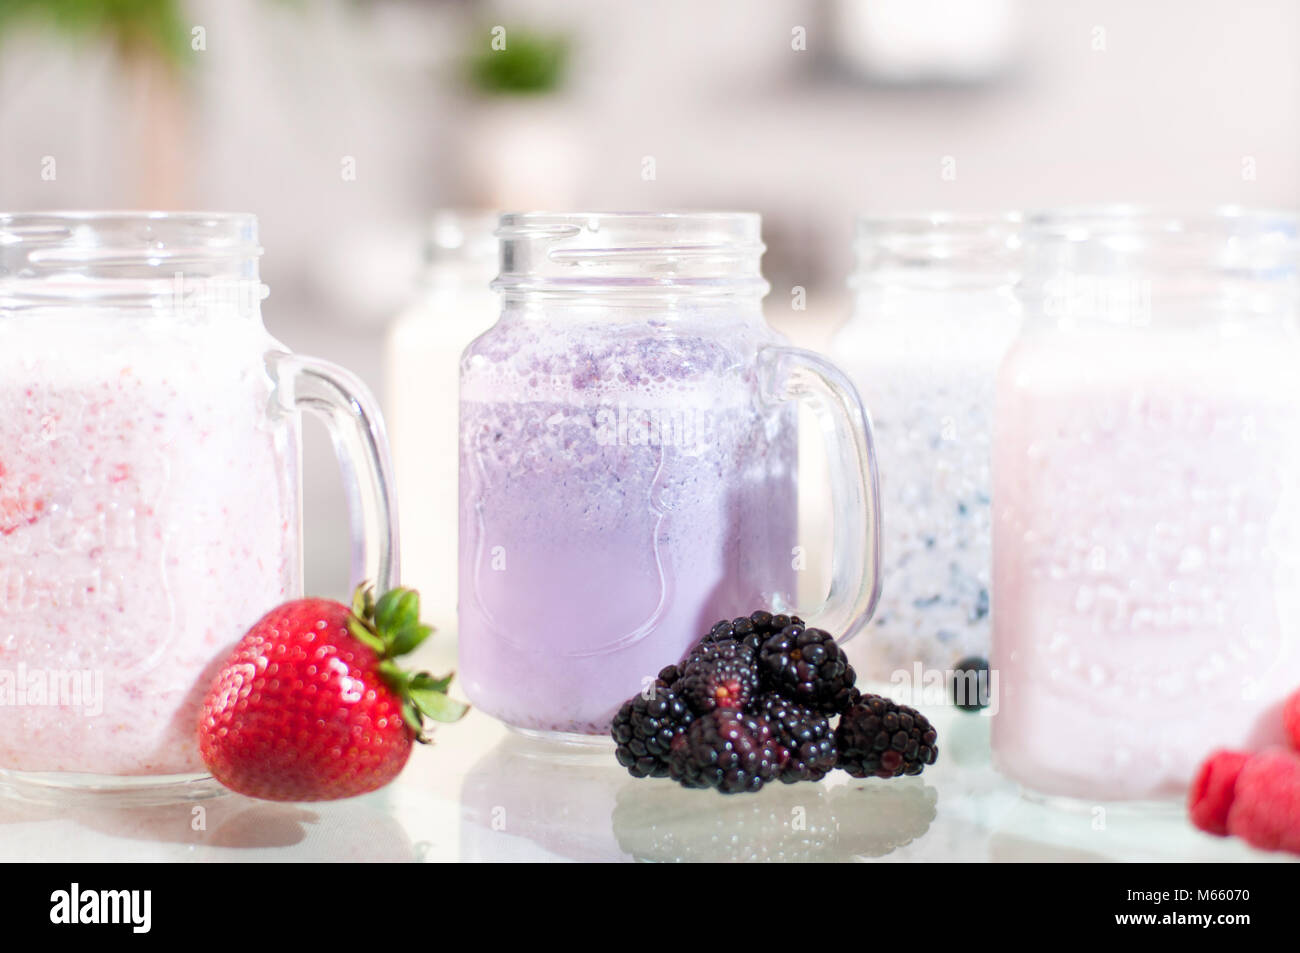 Berry milk smoothie in a glass jar, well being and weight loos concept. - Stock Image